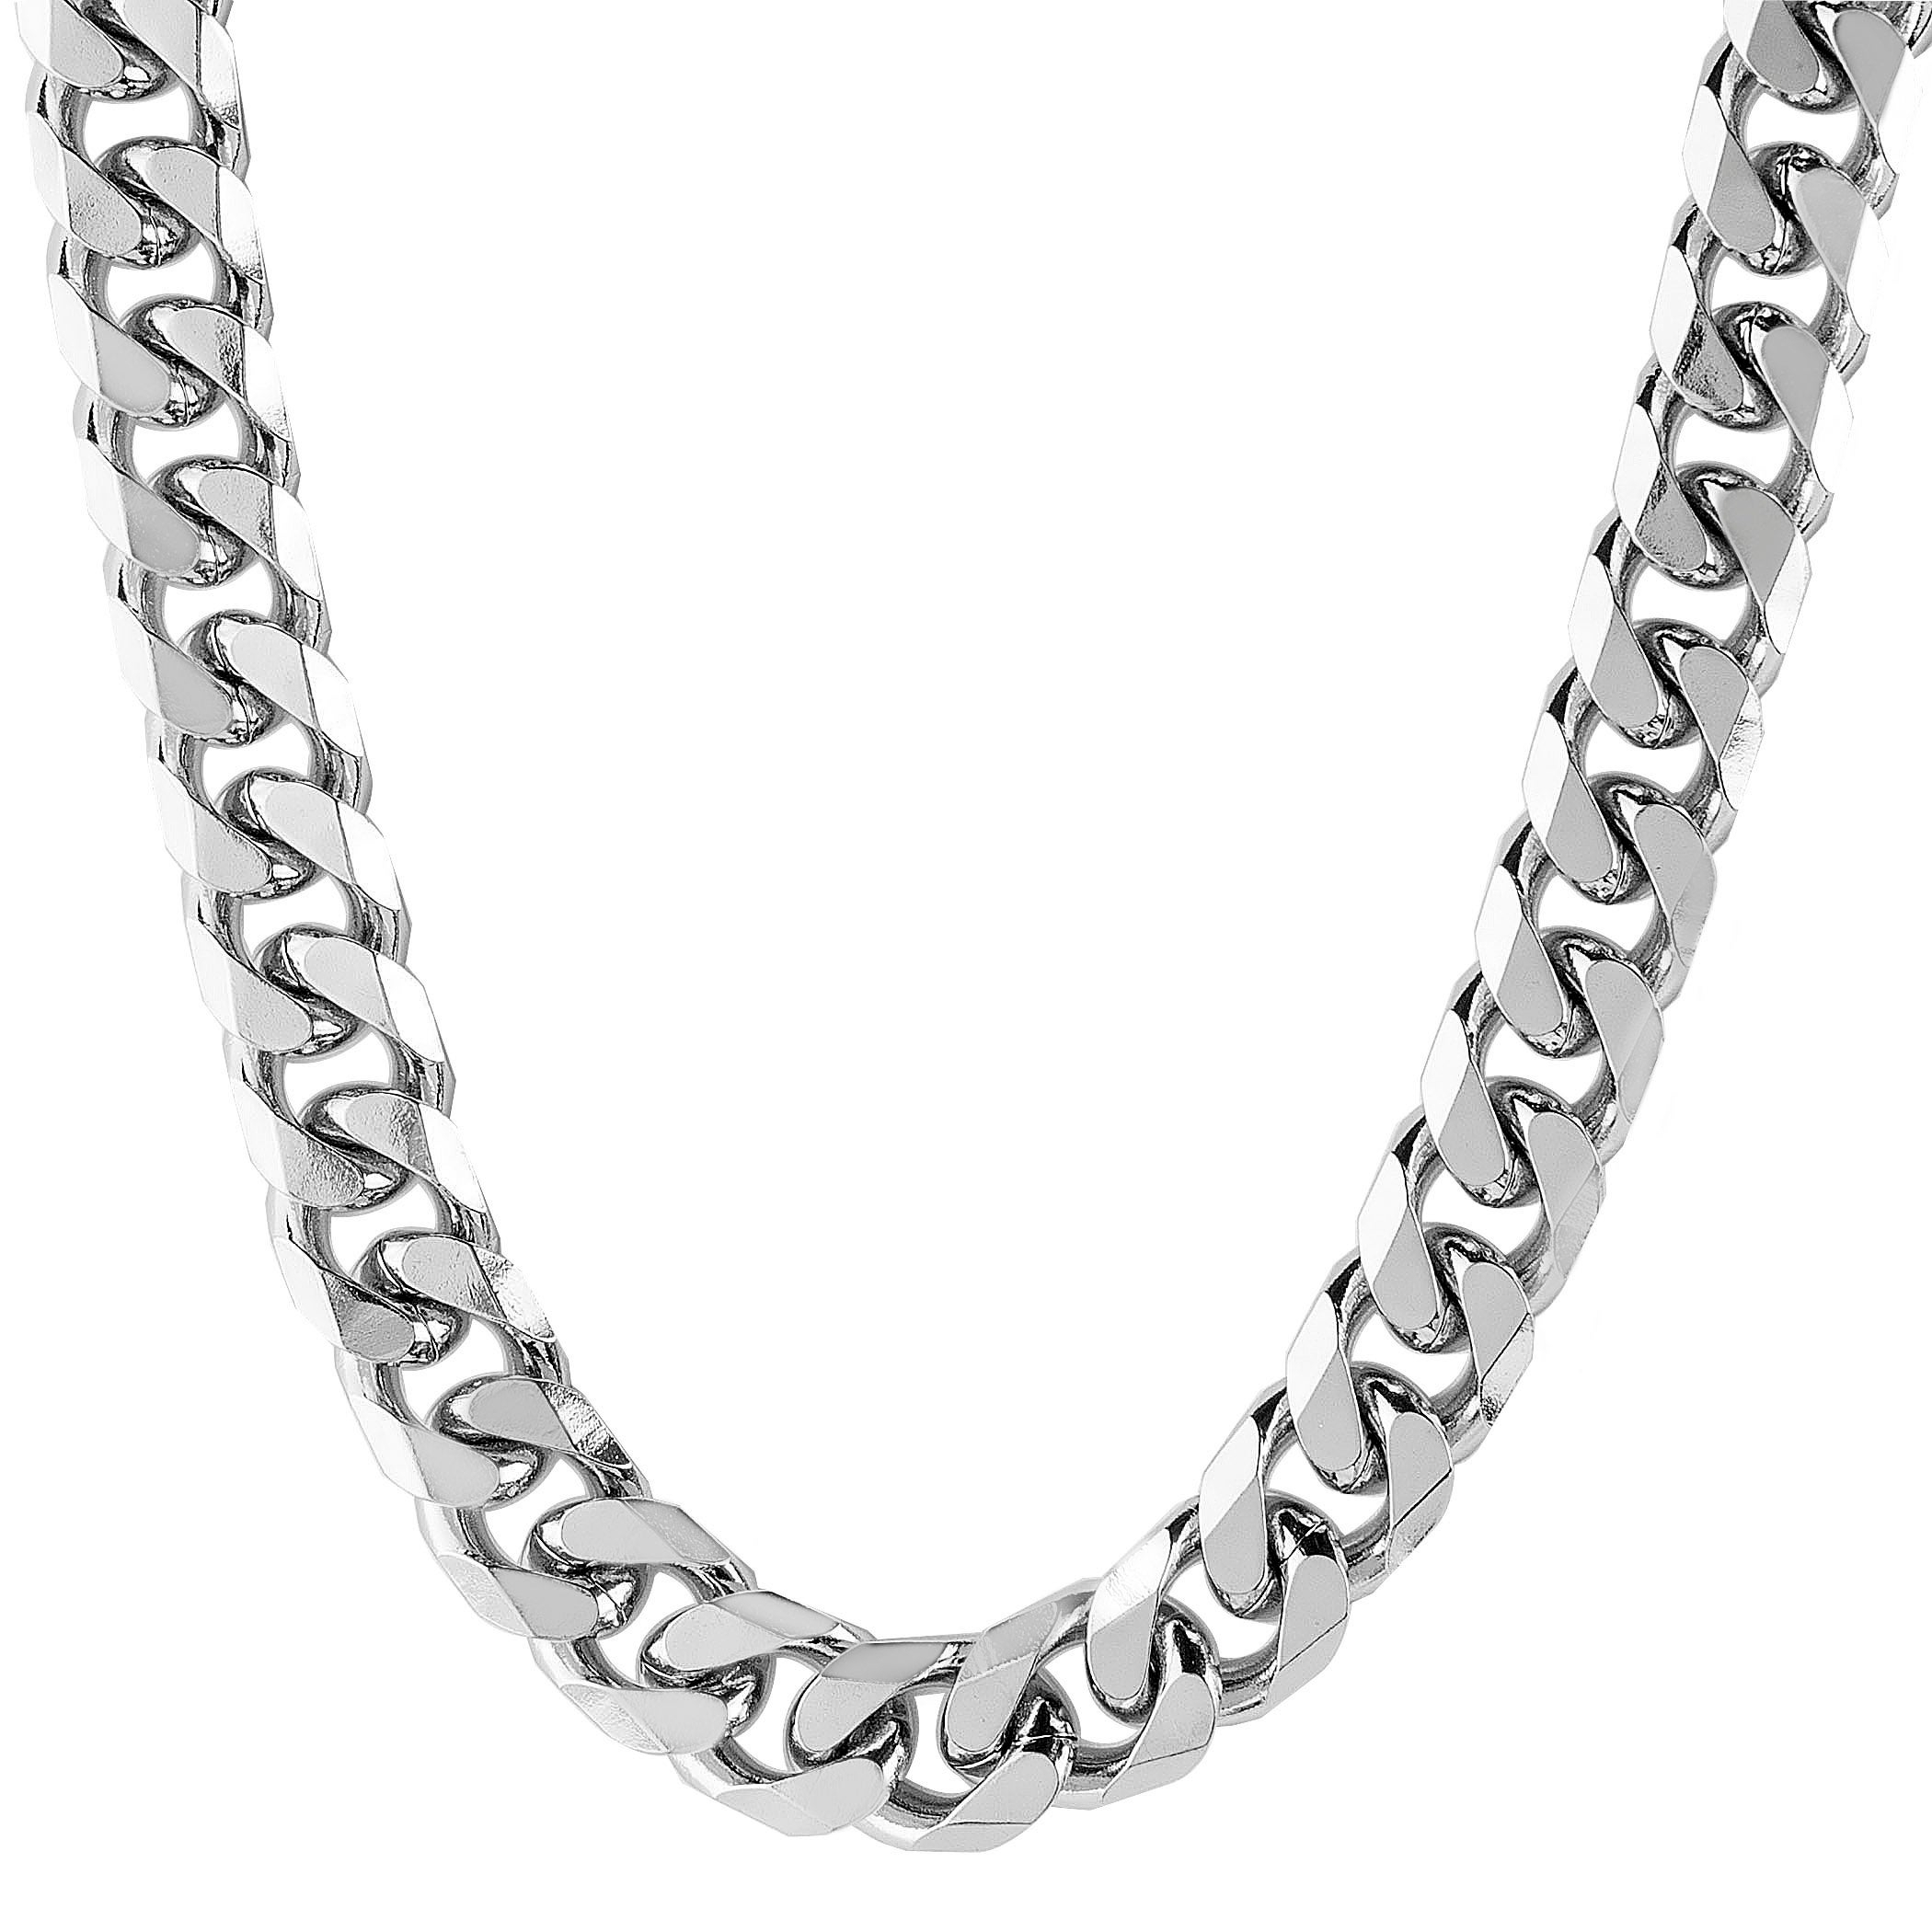 Stainless Steel Beveled Curb Link Chain Necklace (10 Mm) Regarding 2020 Curb Chain Necklaces (View 13 of 25)